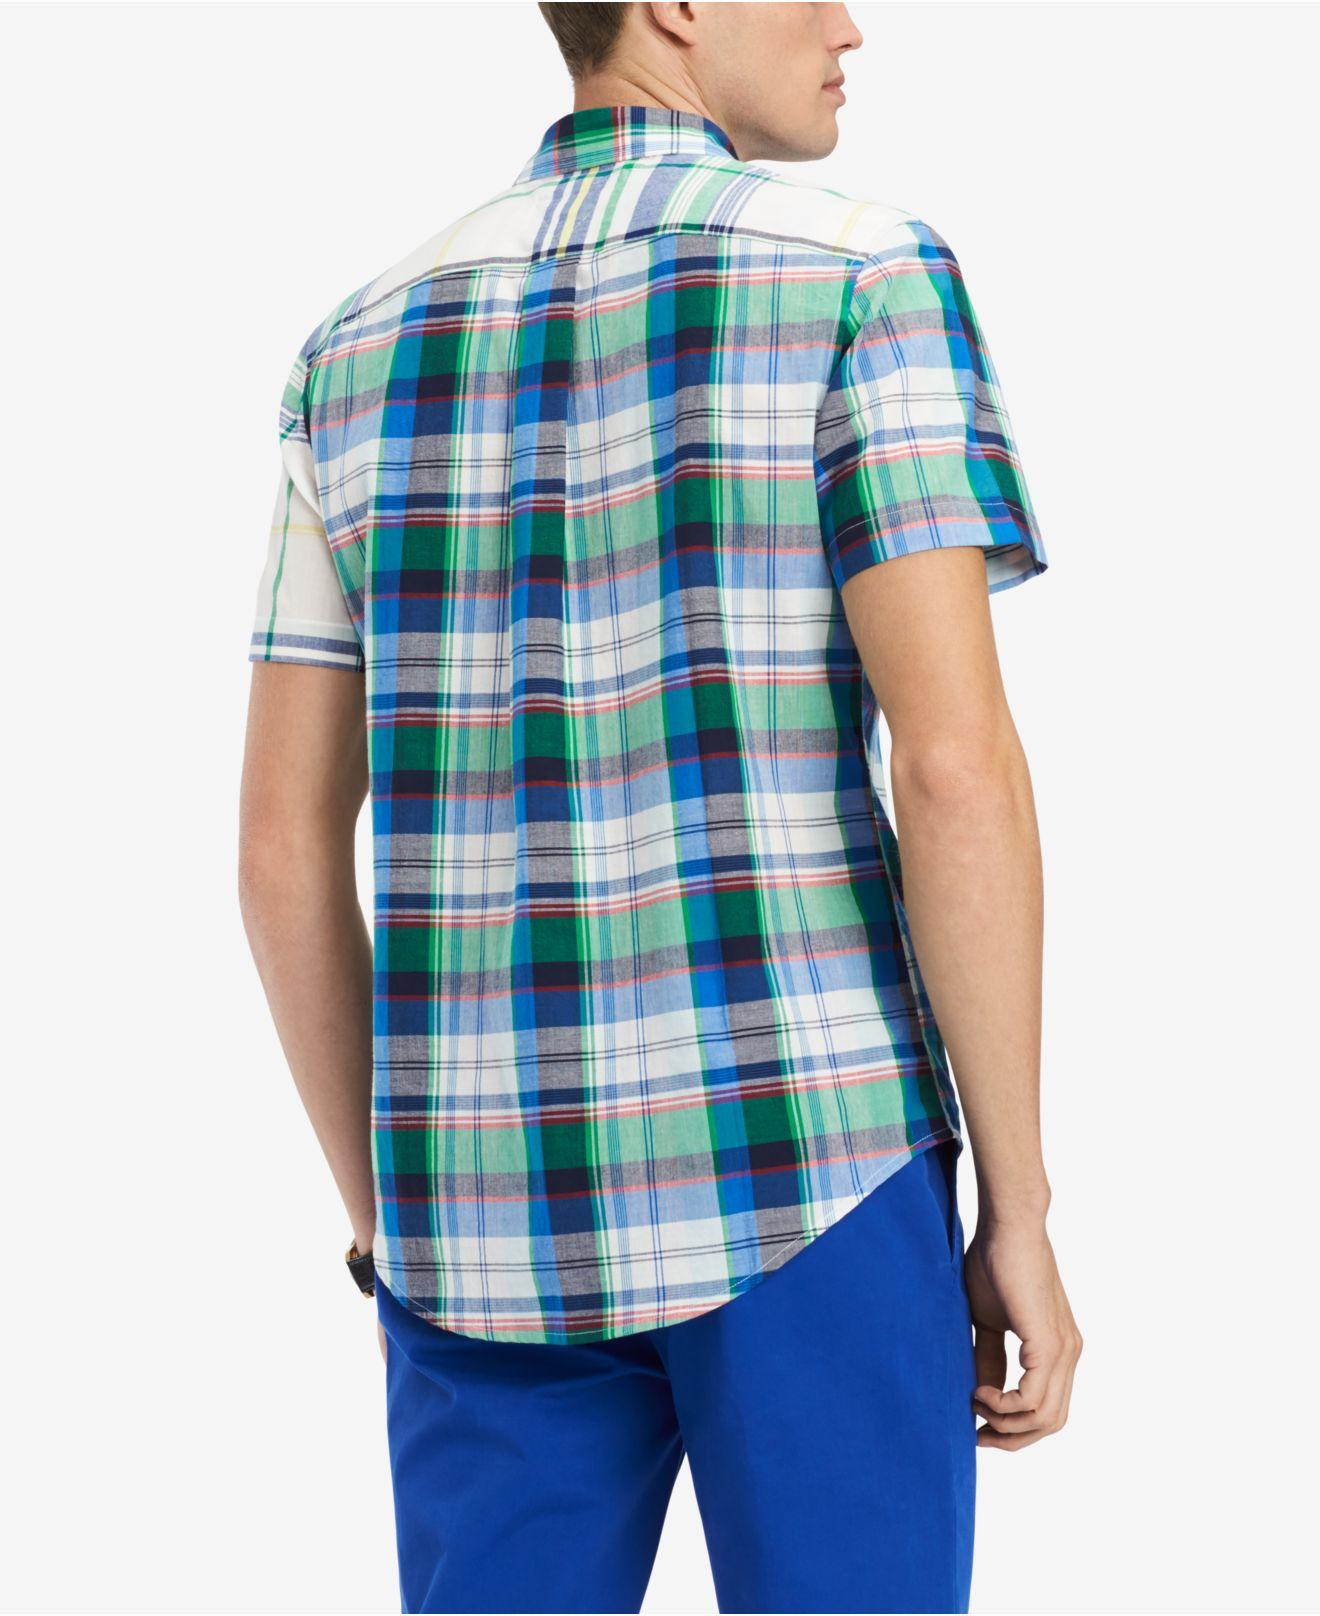 c486bd8d Lyst - Tommy Hilfiger Prescott Plaid Shirt, Created For Macy's in Blue for  Men